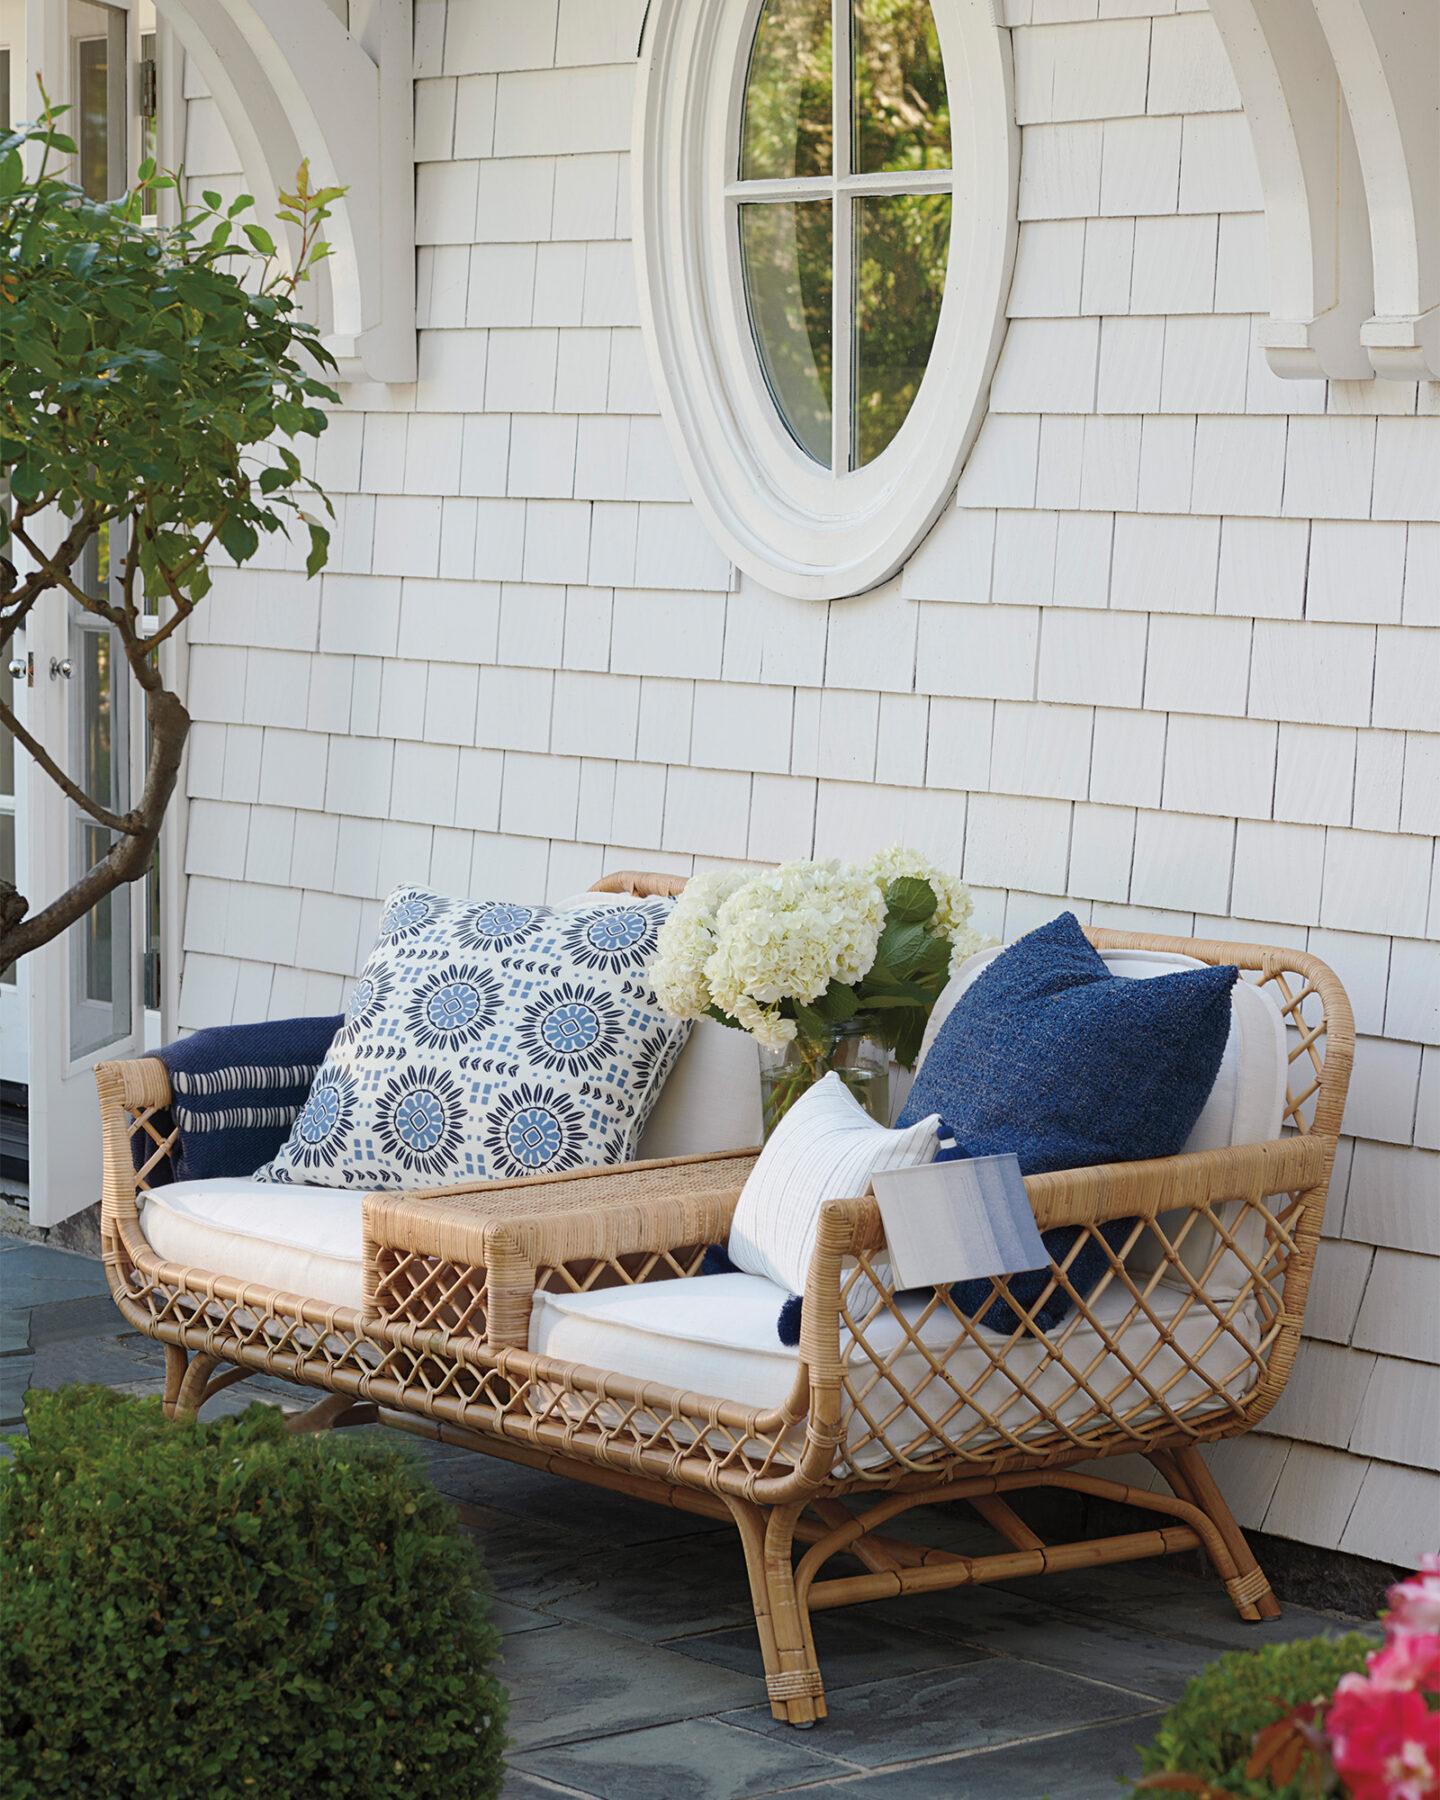 Serena & Lily Campania pillow cover on gorgeous outdoor seating at a coastal home. #serenaandlily #coastalstyle #homedecor #outdoordecor #pillows